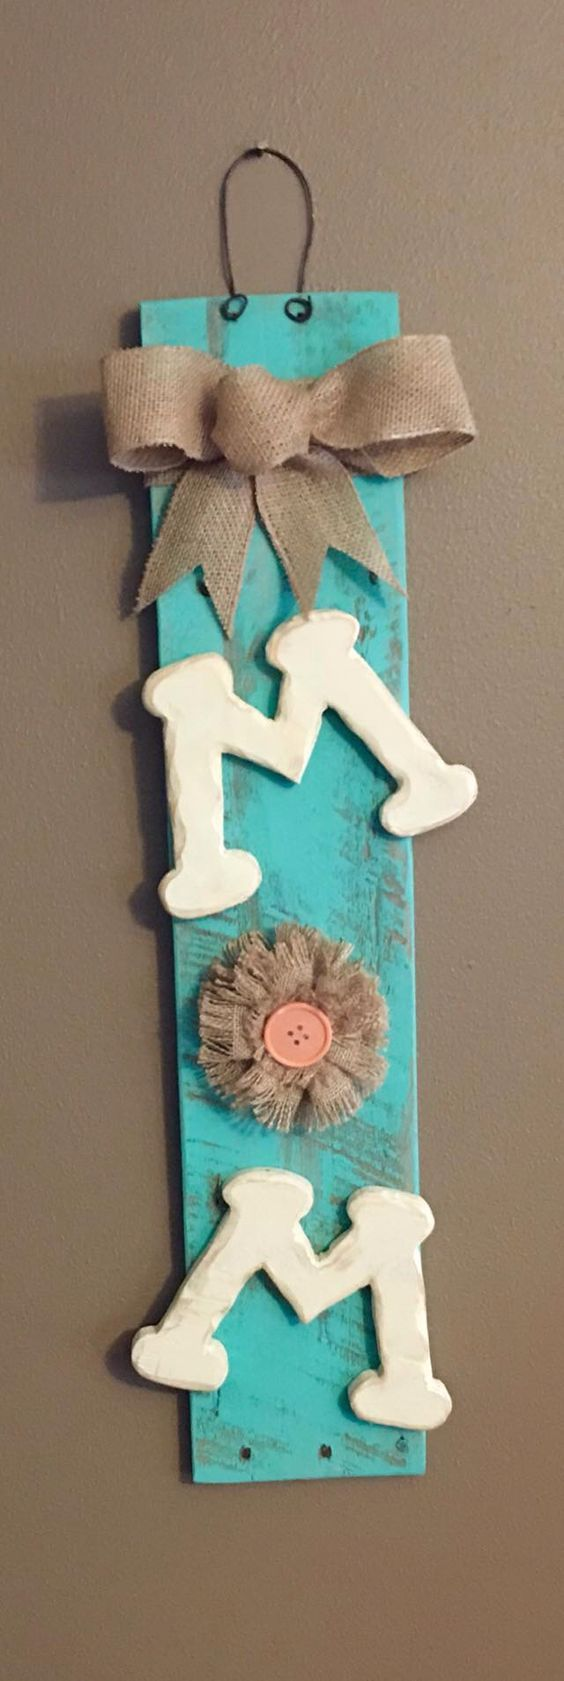 Wooden Pallet Sign | DIY Mothers Day Gift Ideas from Daughter...